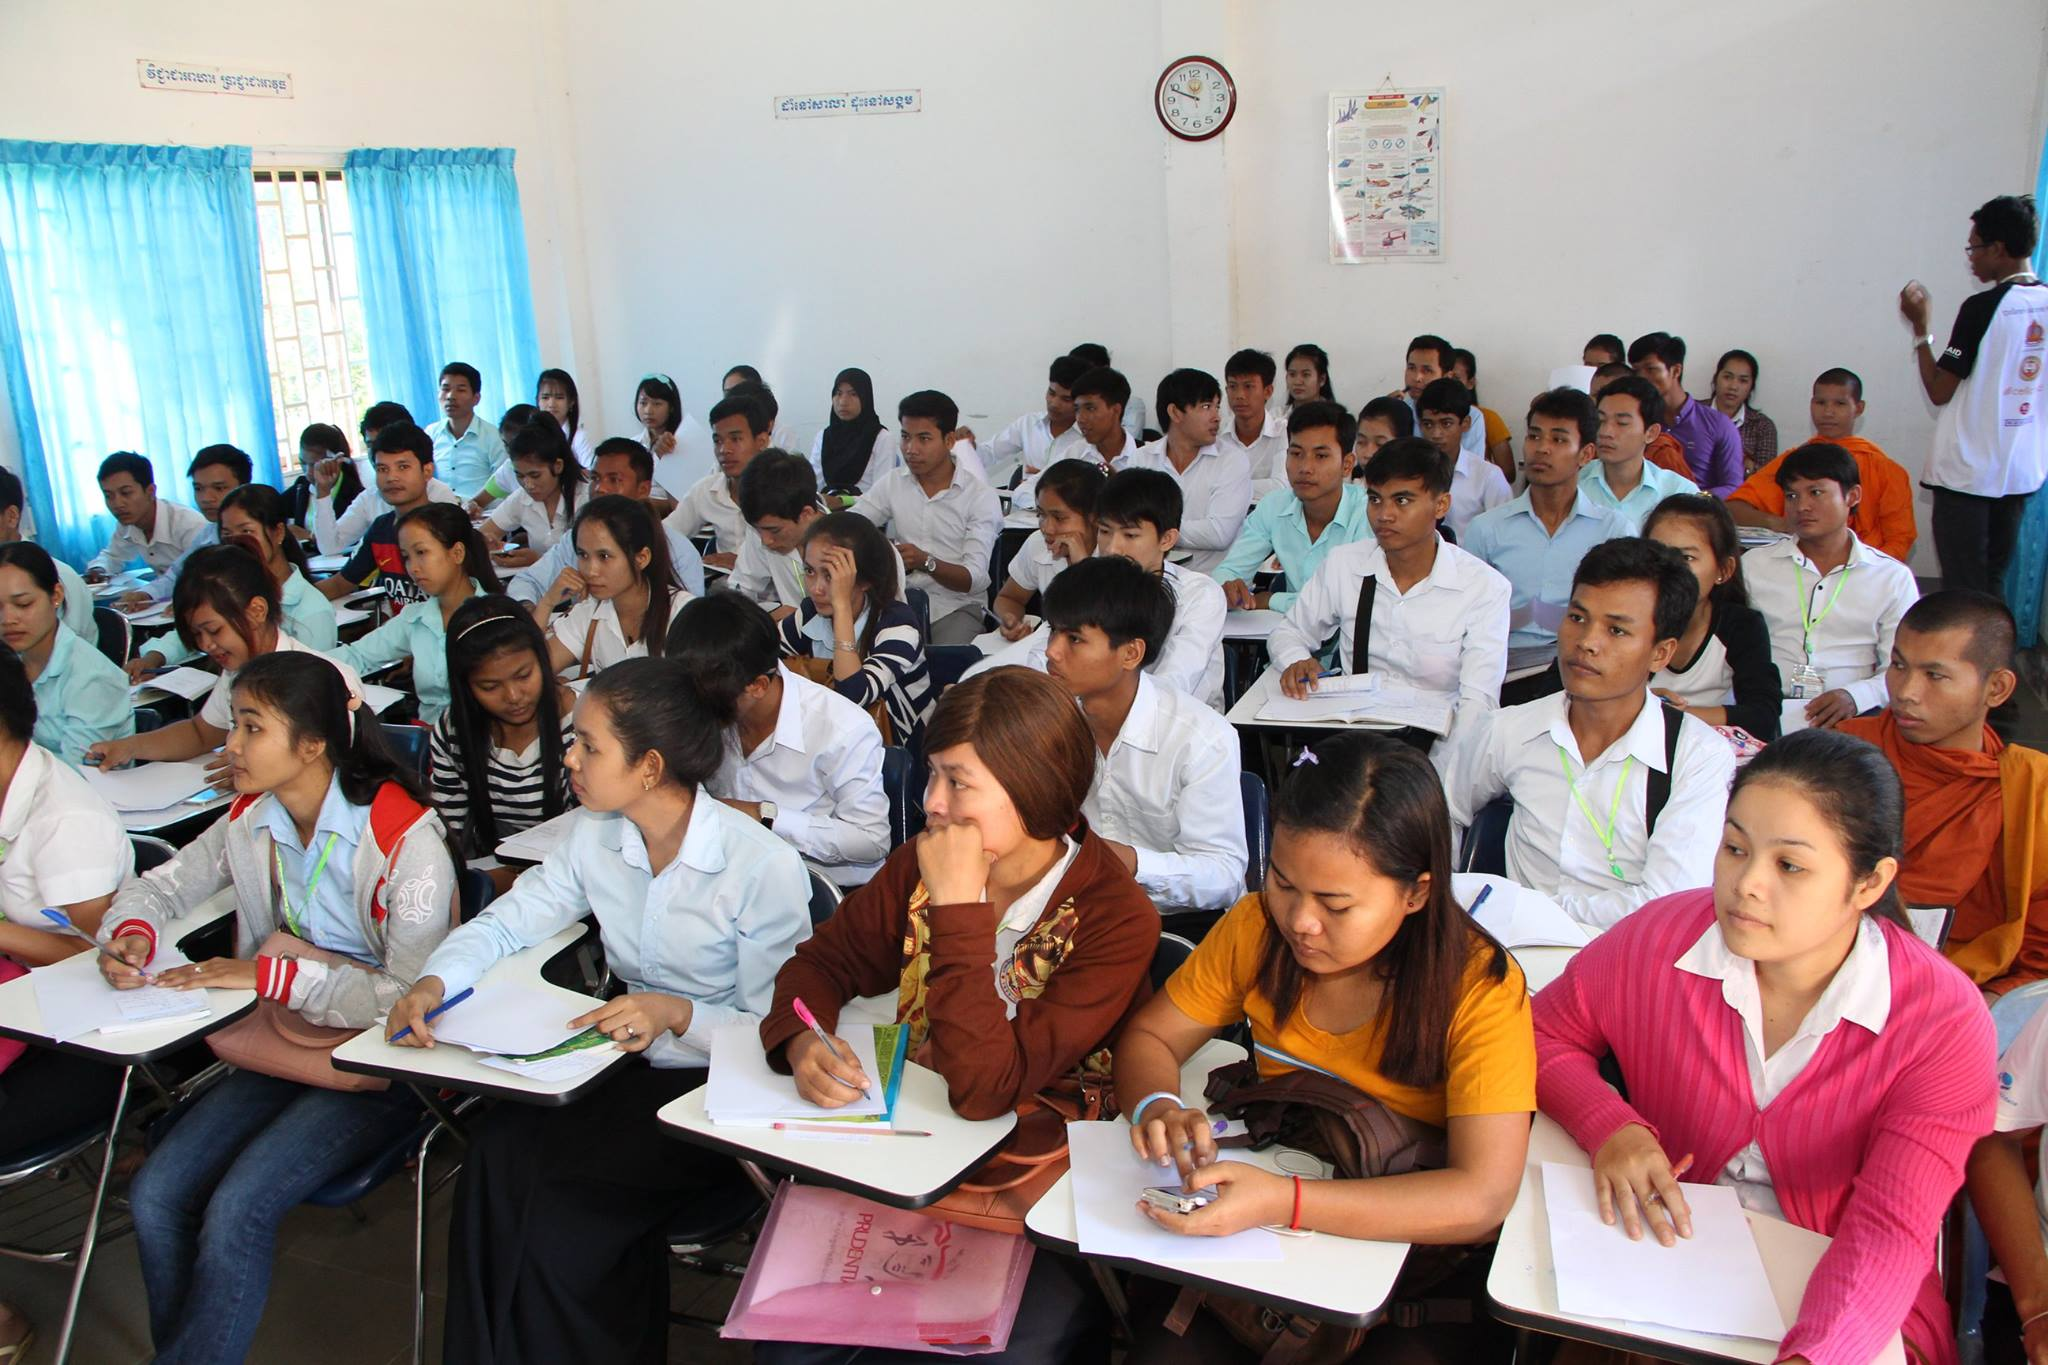 Eager learners during one of Barcamp Kampong Cham's sessions. There were over 350 participants in total for all sessions conducted.